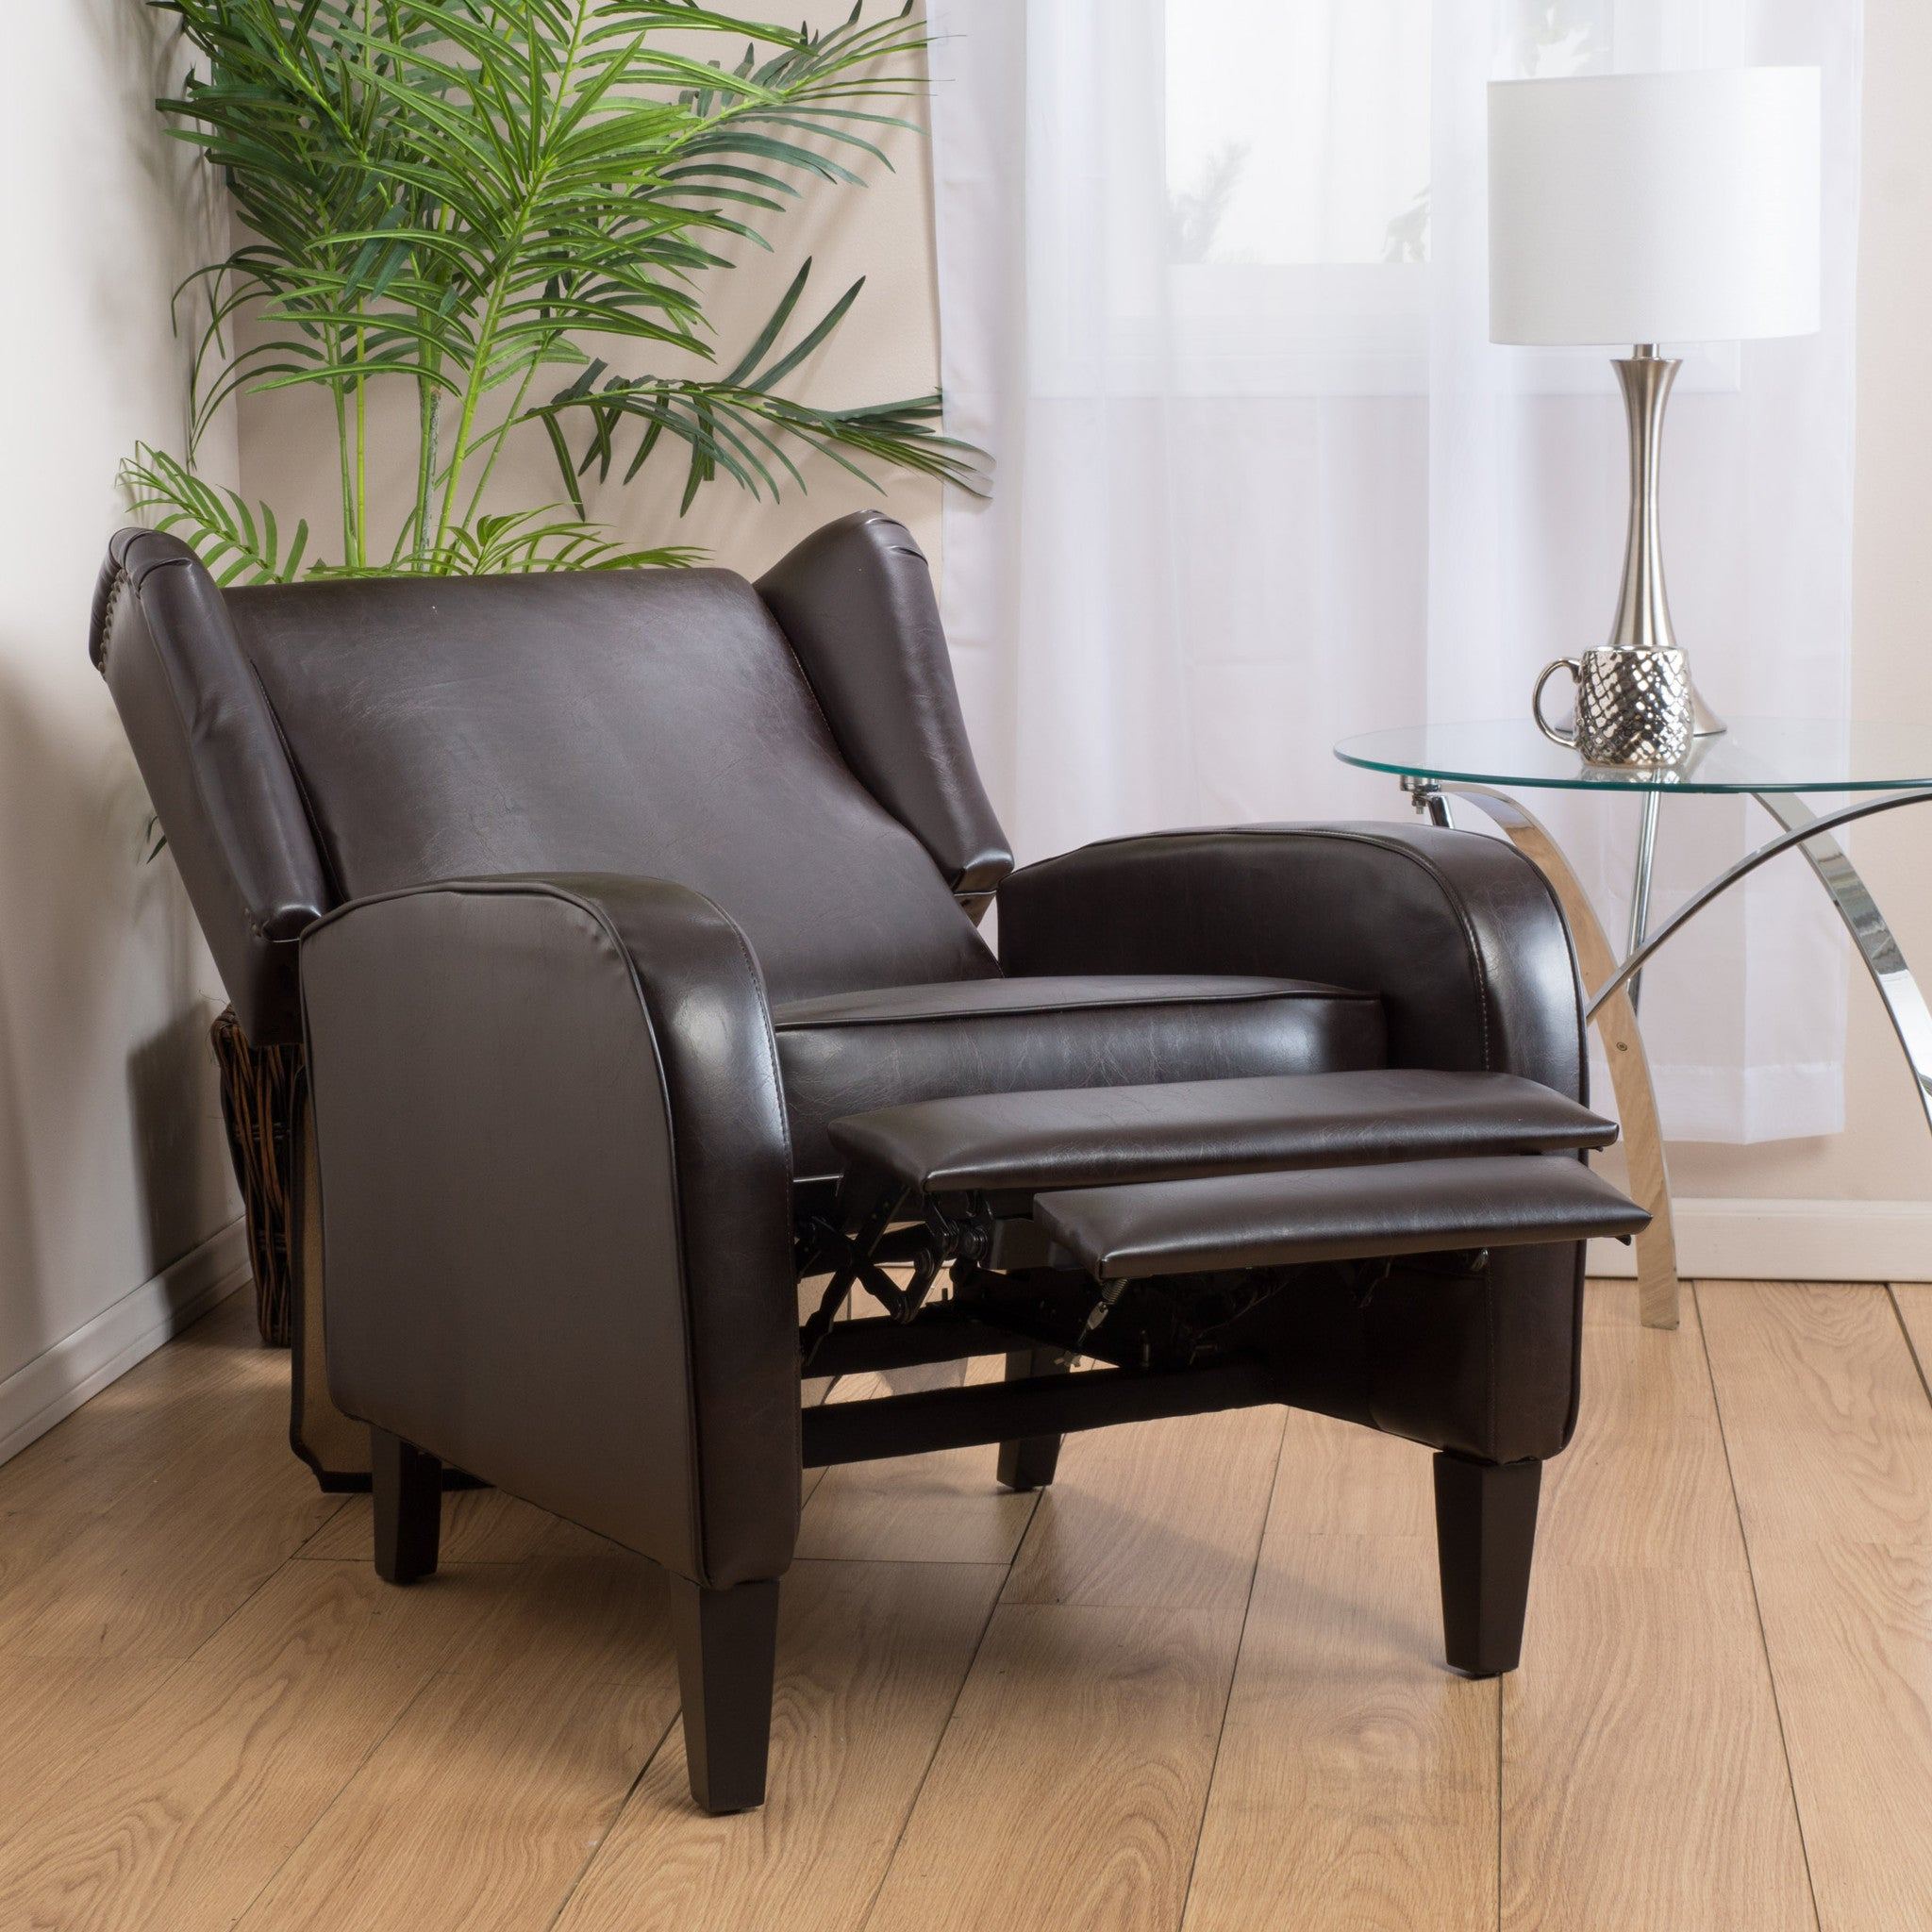 Hadley Espresso Leather Wingback Club Chair Recliner : recliner chairs canada - islam-shia.org